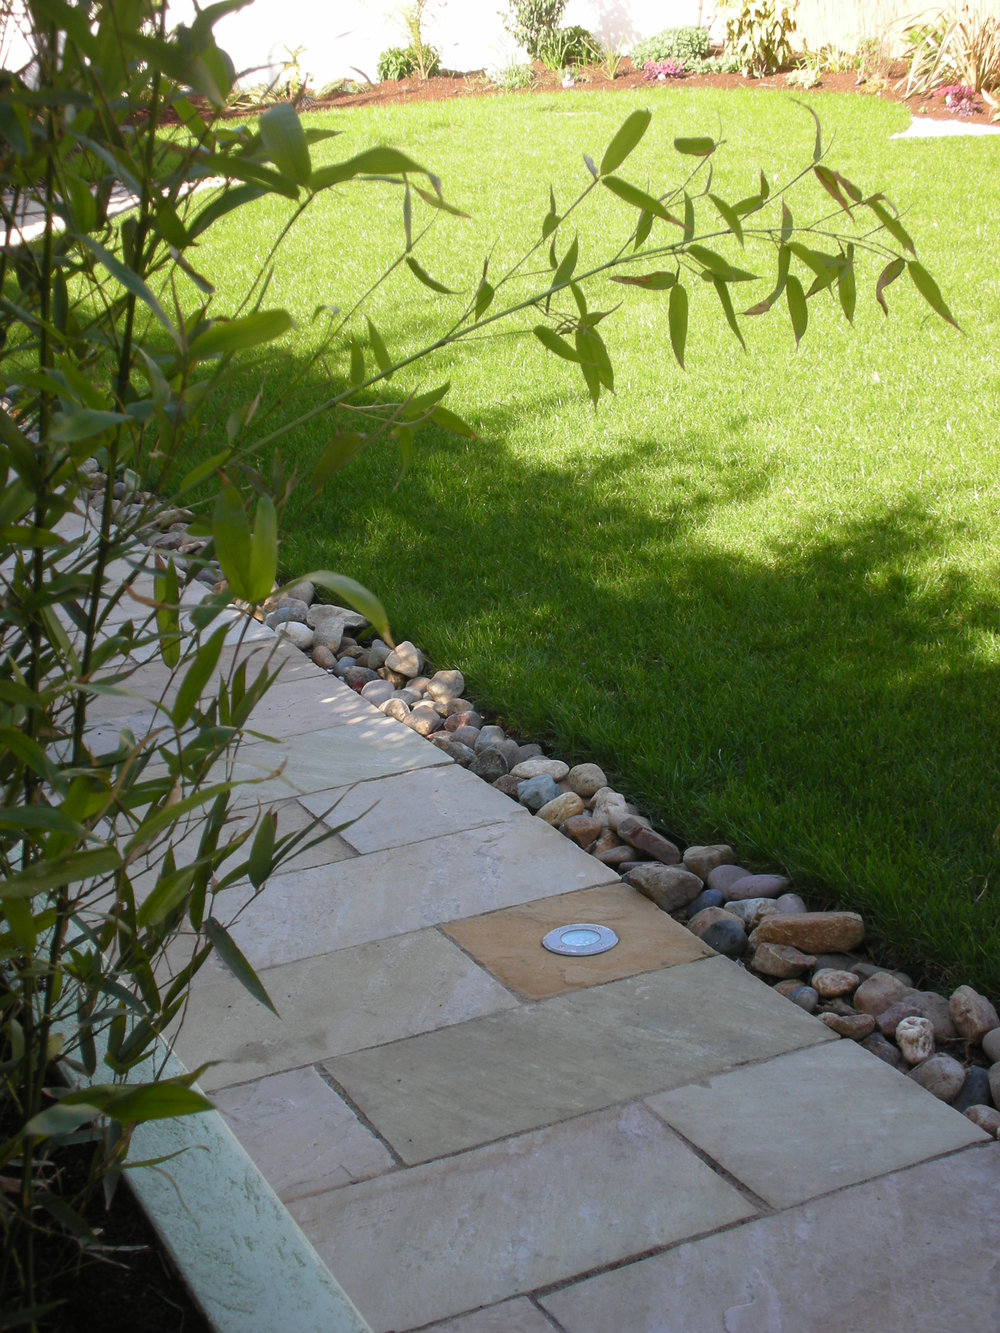 sandstone and lawn.jpg